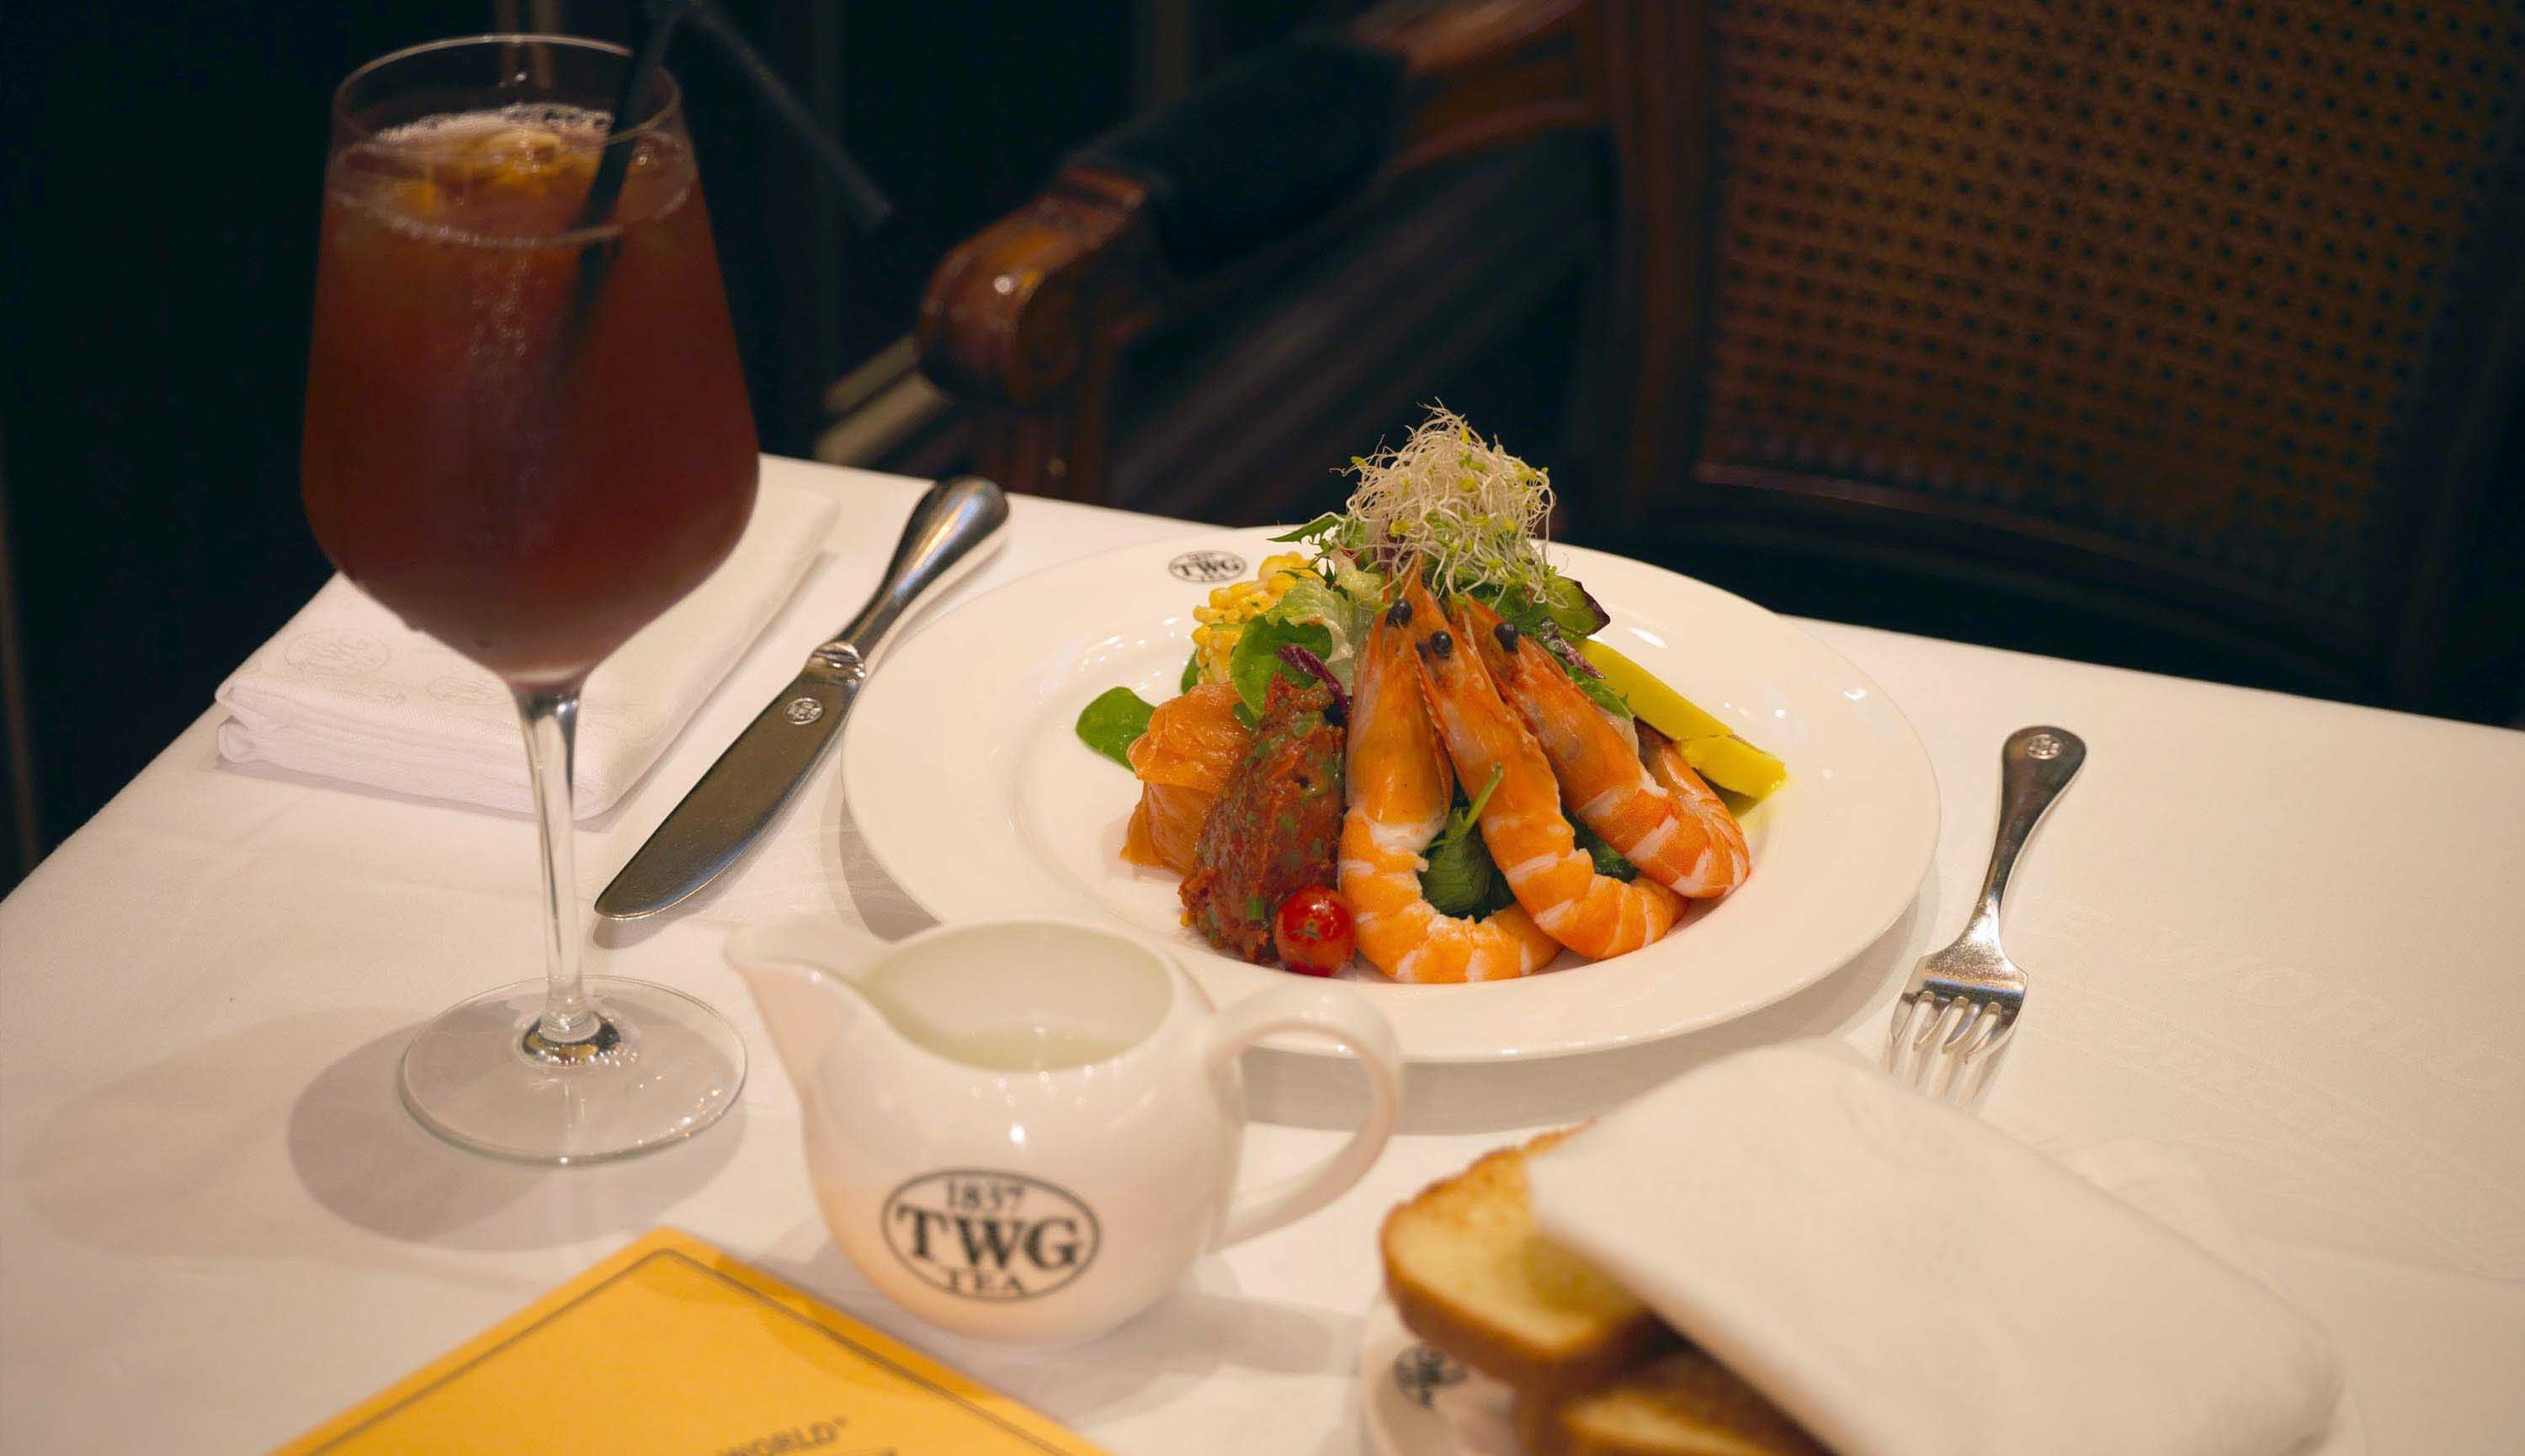 TWG Tea 올 데이 다이닝 (All Day Dining)